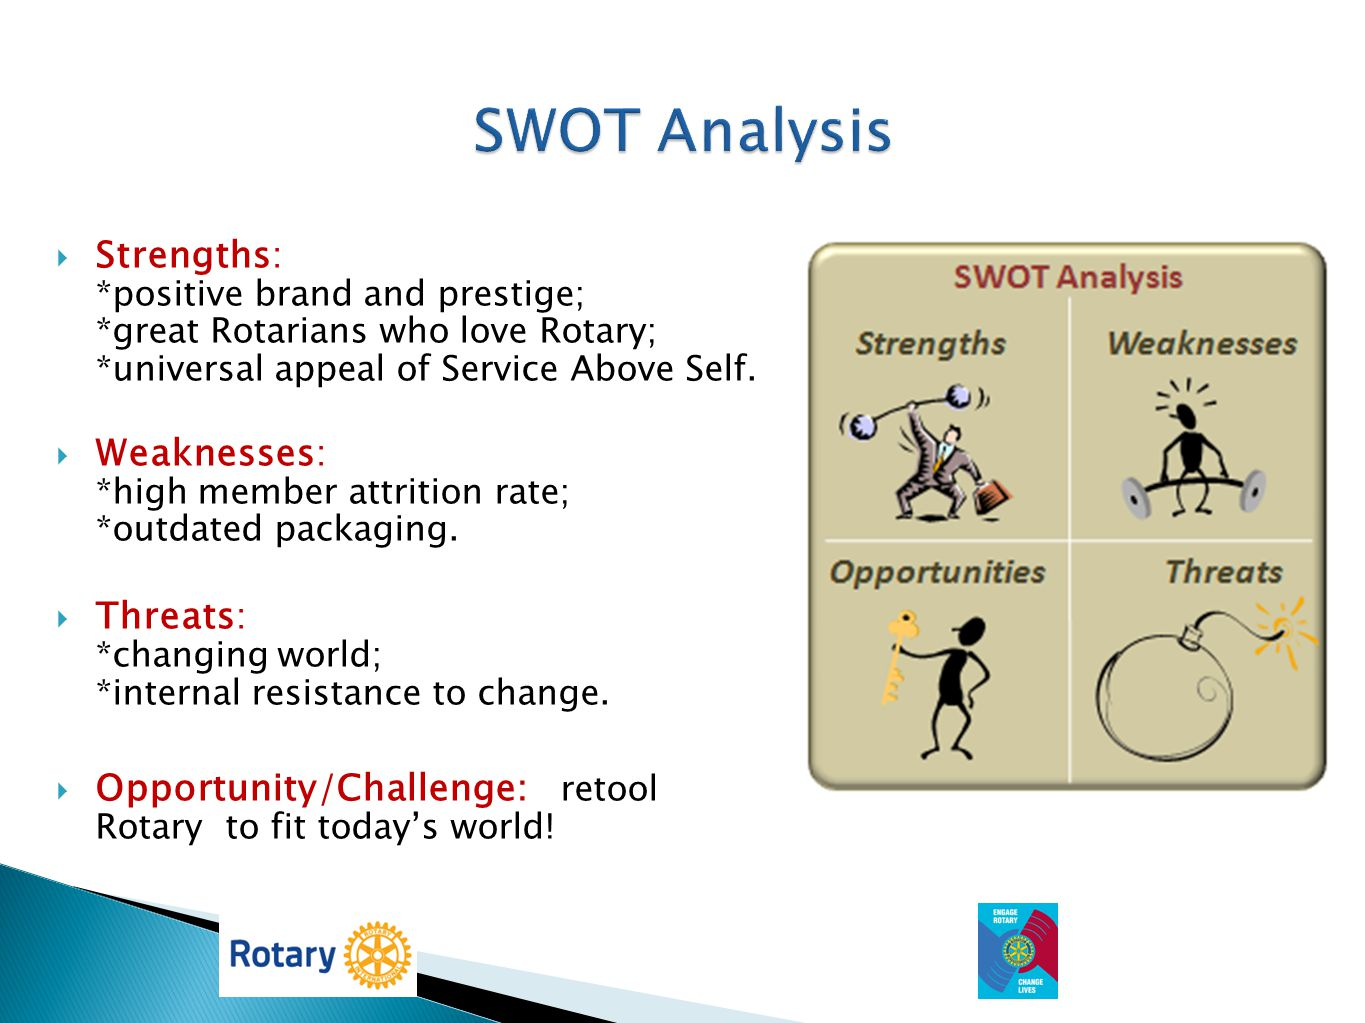 SWOT Analysis: A Powerful and Underutilized Tool